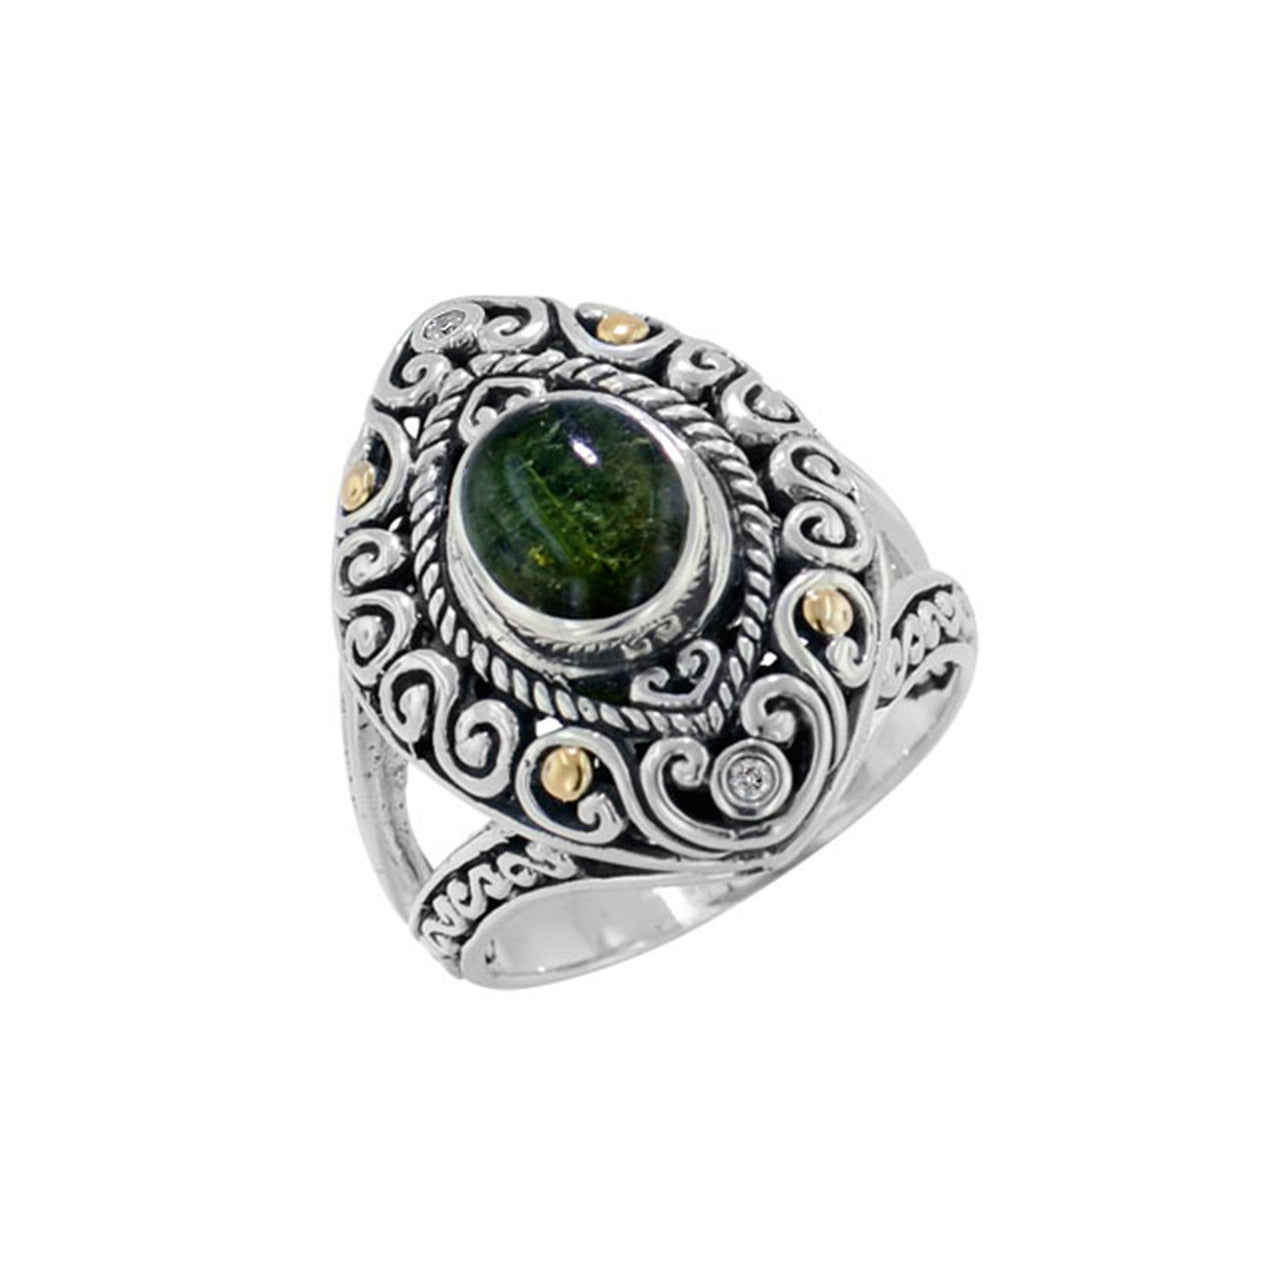 Scrollwork Deep Green Tourmaline and Diamond Ring